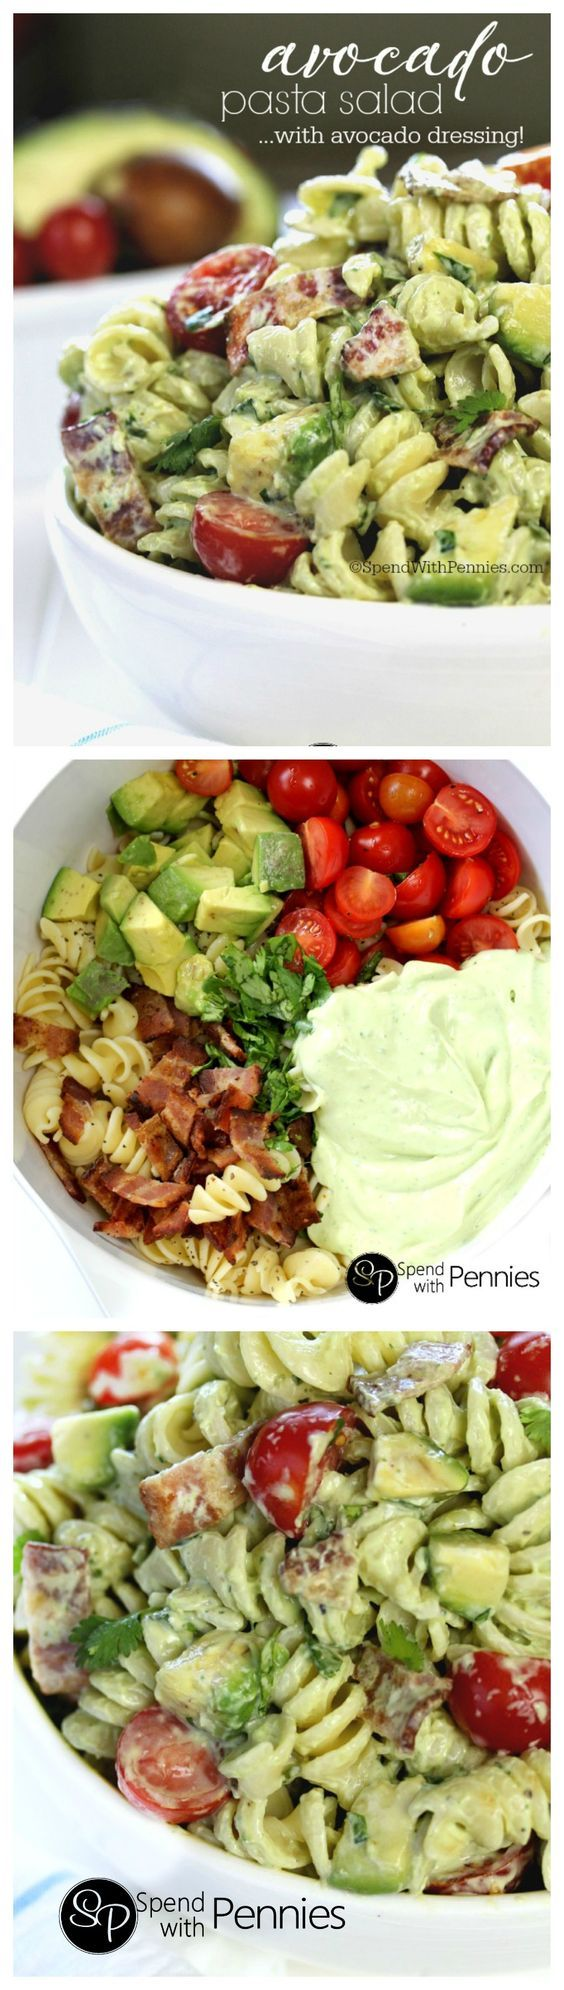 Cold pasta salads are the perfect & satisfying quick dinner or lunch! This delicious pasta salad recipe has a homemade avocado dressing…